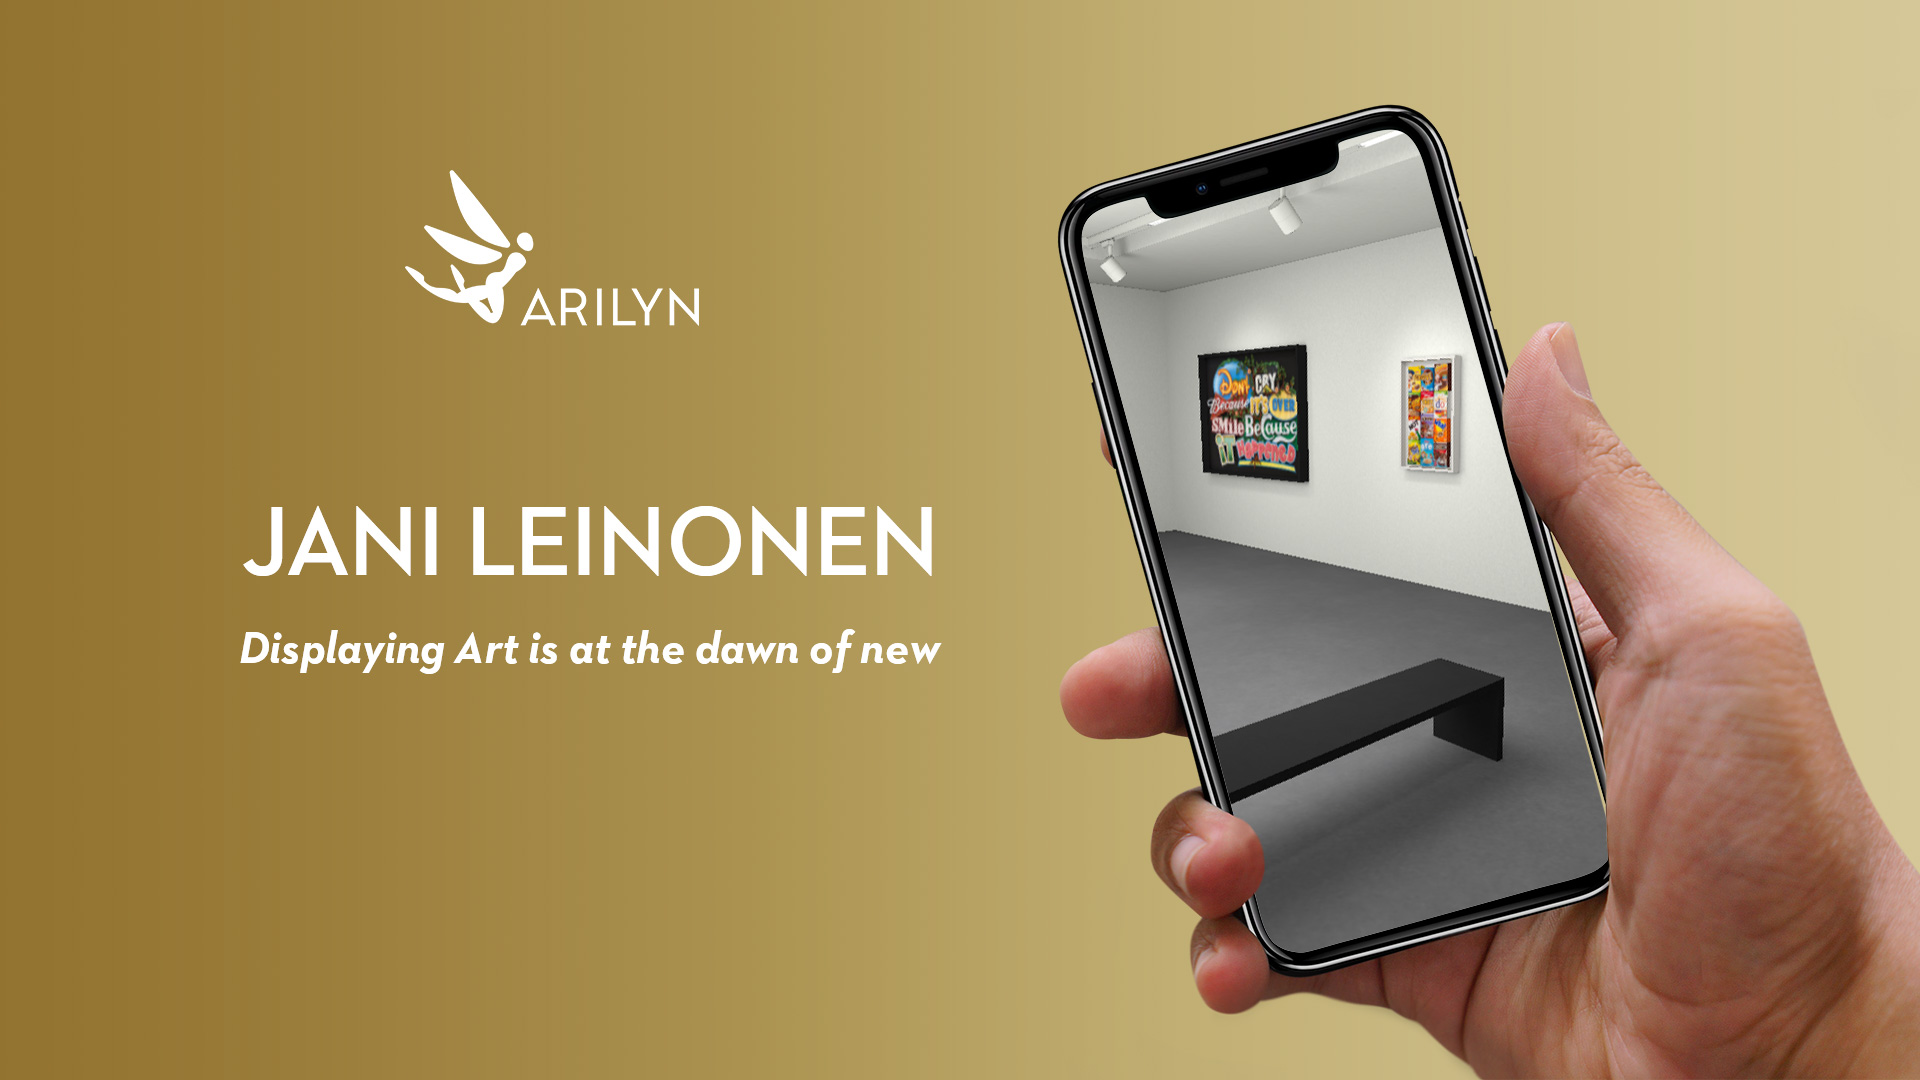 Displaying art is at the dawn of new: Jani Leinonen virtual art gallery